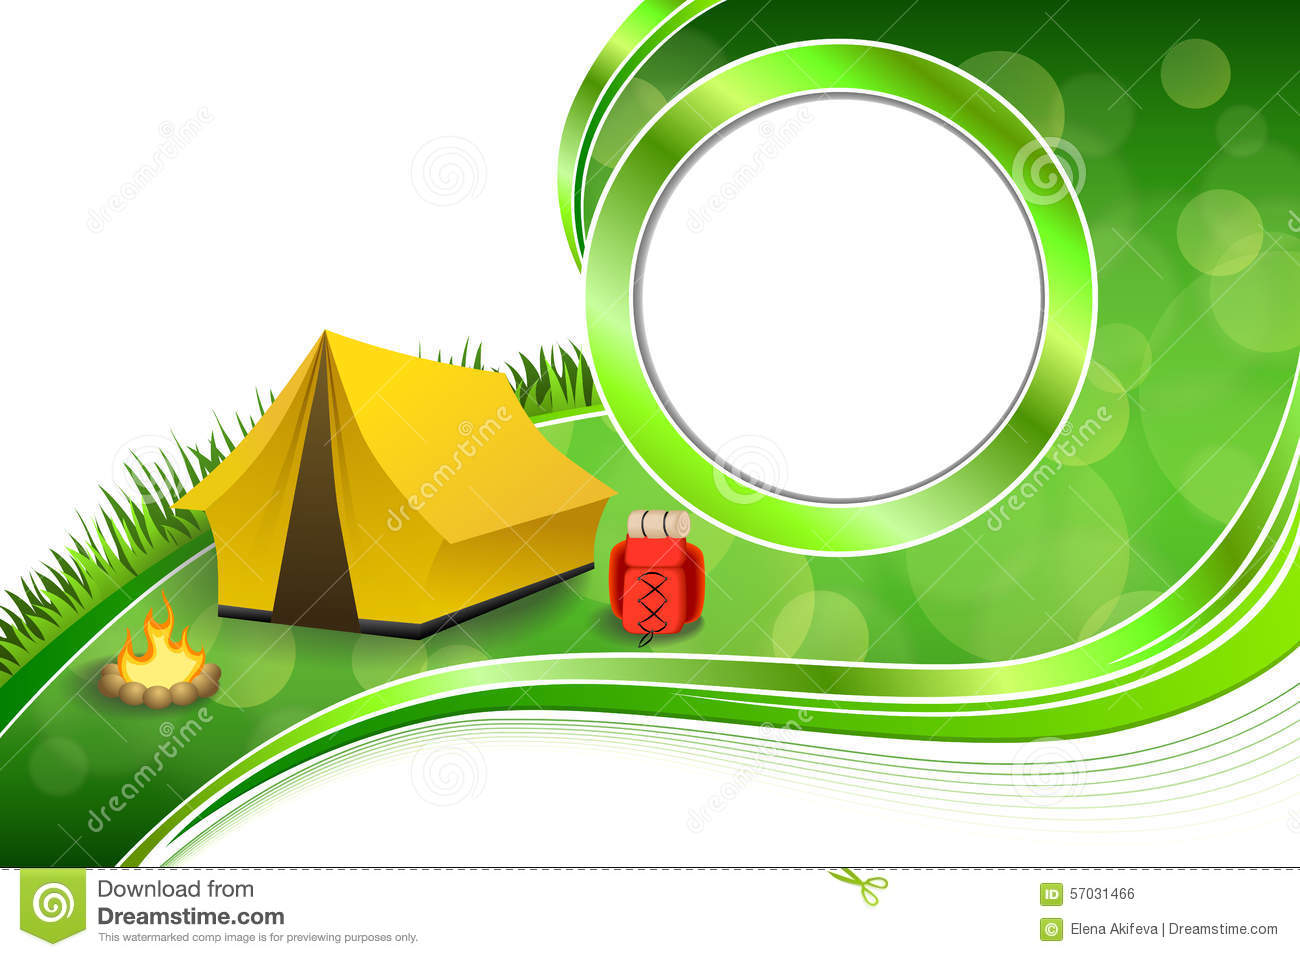 Background Abstract Green Grass Camping Tourism Yellow